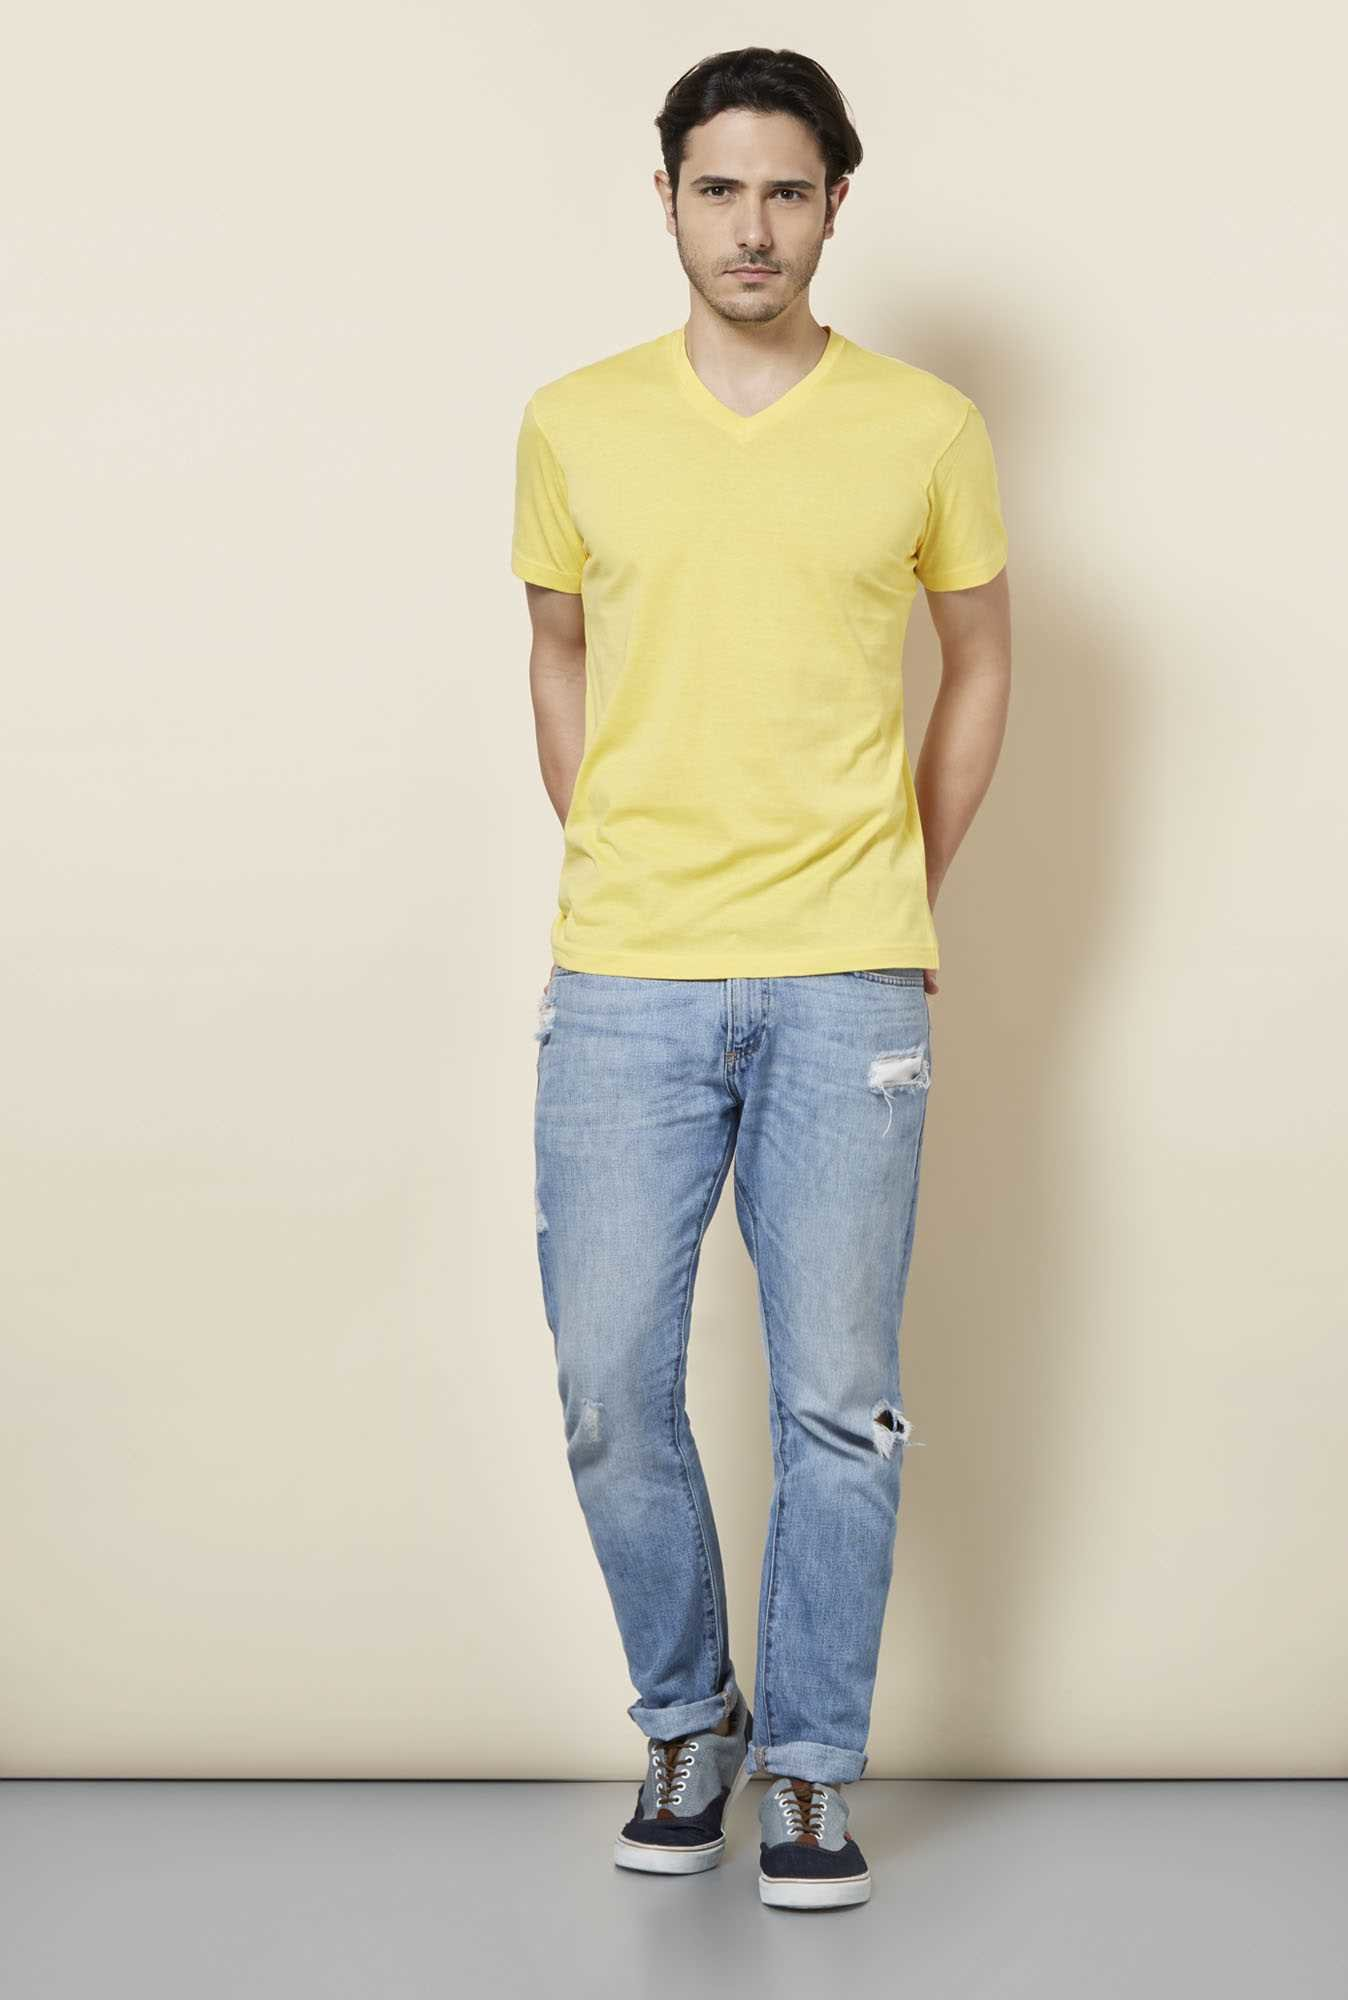 Buy Tuna London Yellow V Neck T Shirt Online At Best Price